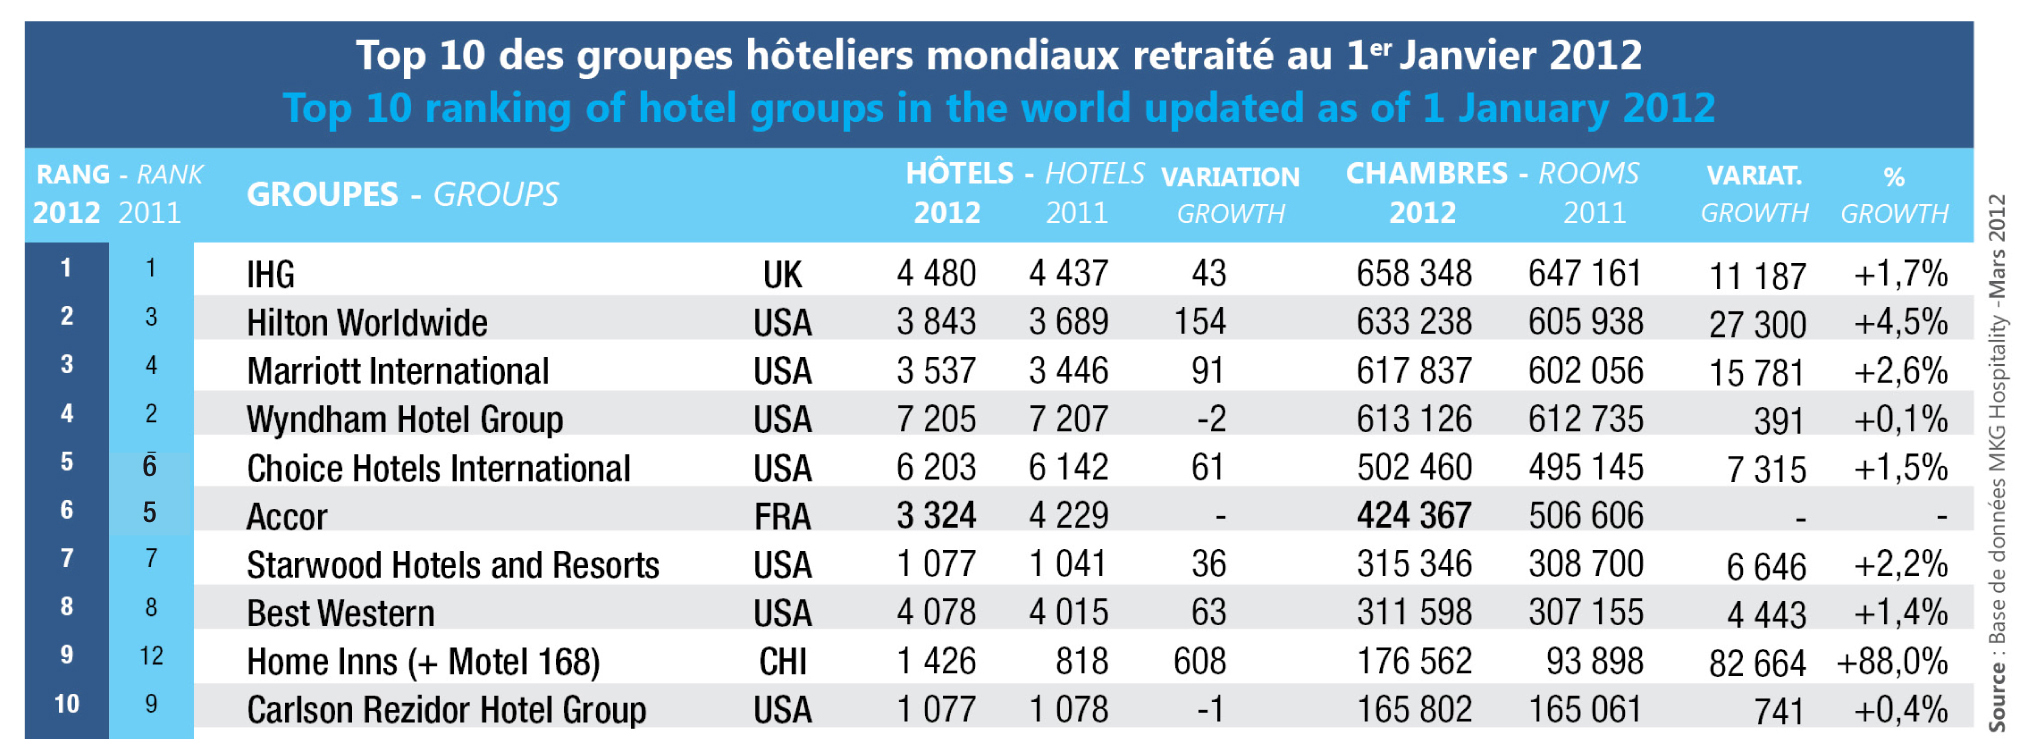 Accor Goes To 6th Place In The World Ranking Following The